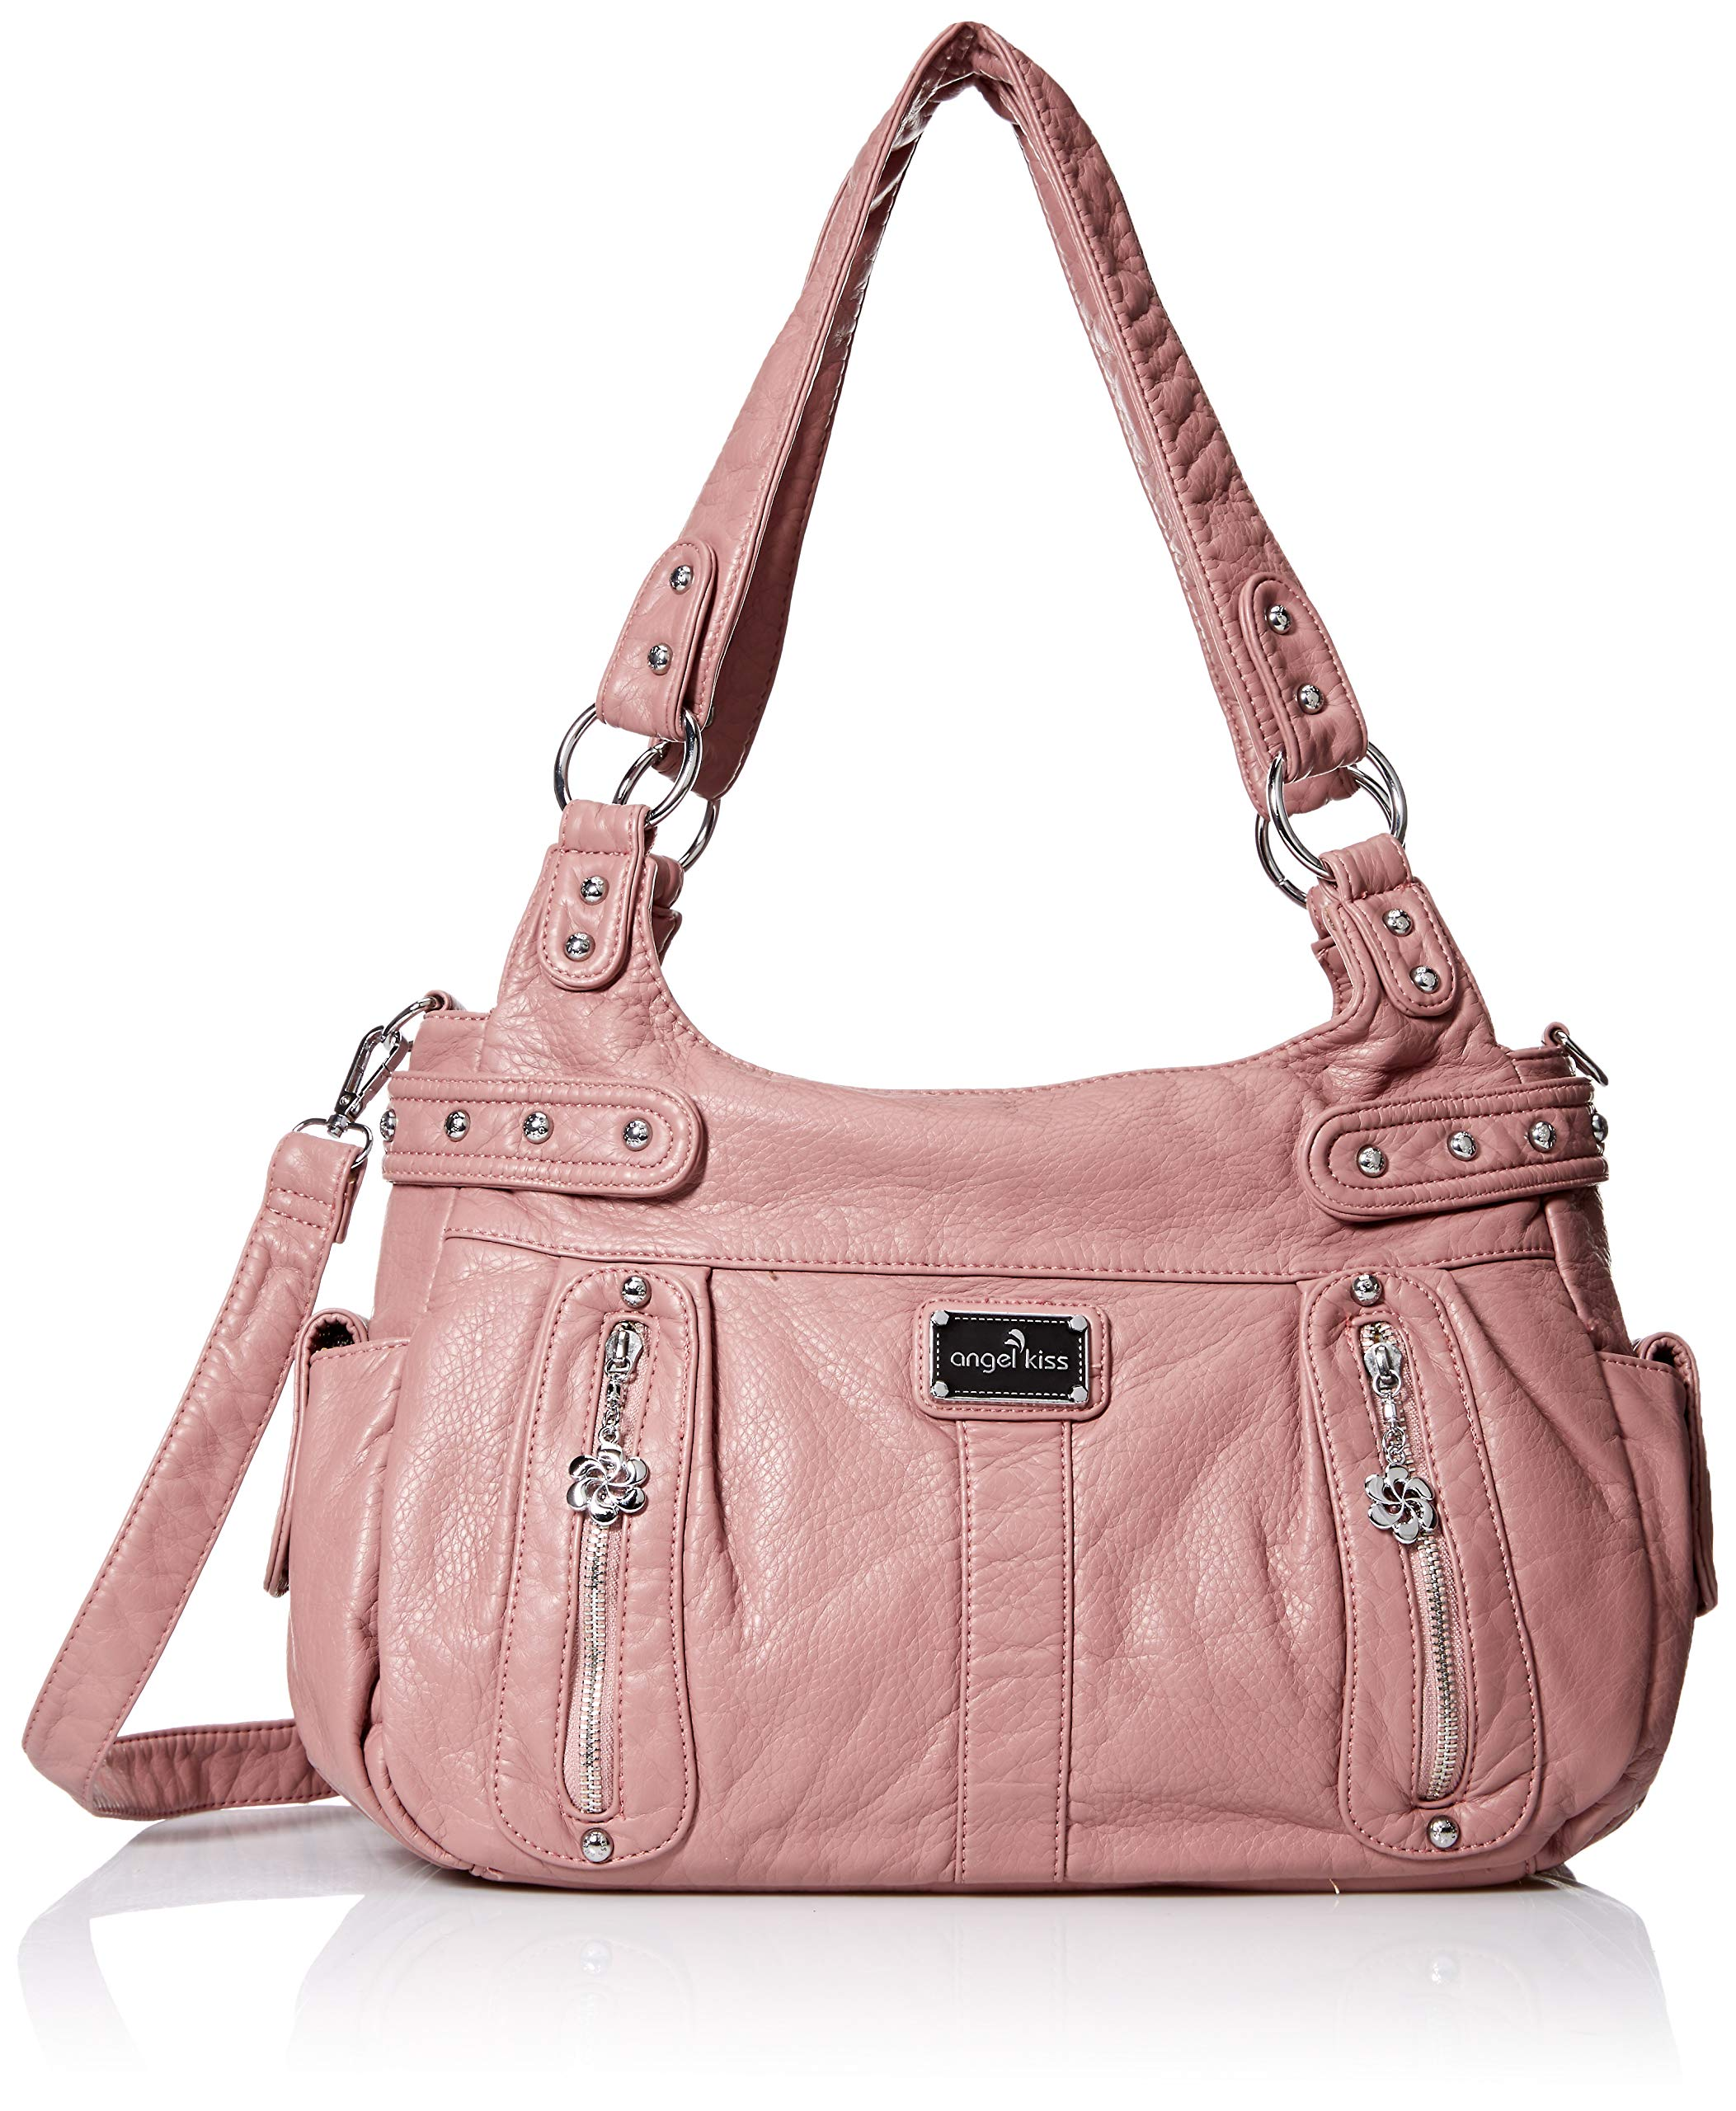 0aac572db88 Angelkiss Design Handbags Womens Purse Feel Soft Lether Multiple Top Zipper Pockets  Shoulder Bags Large …